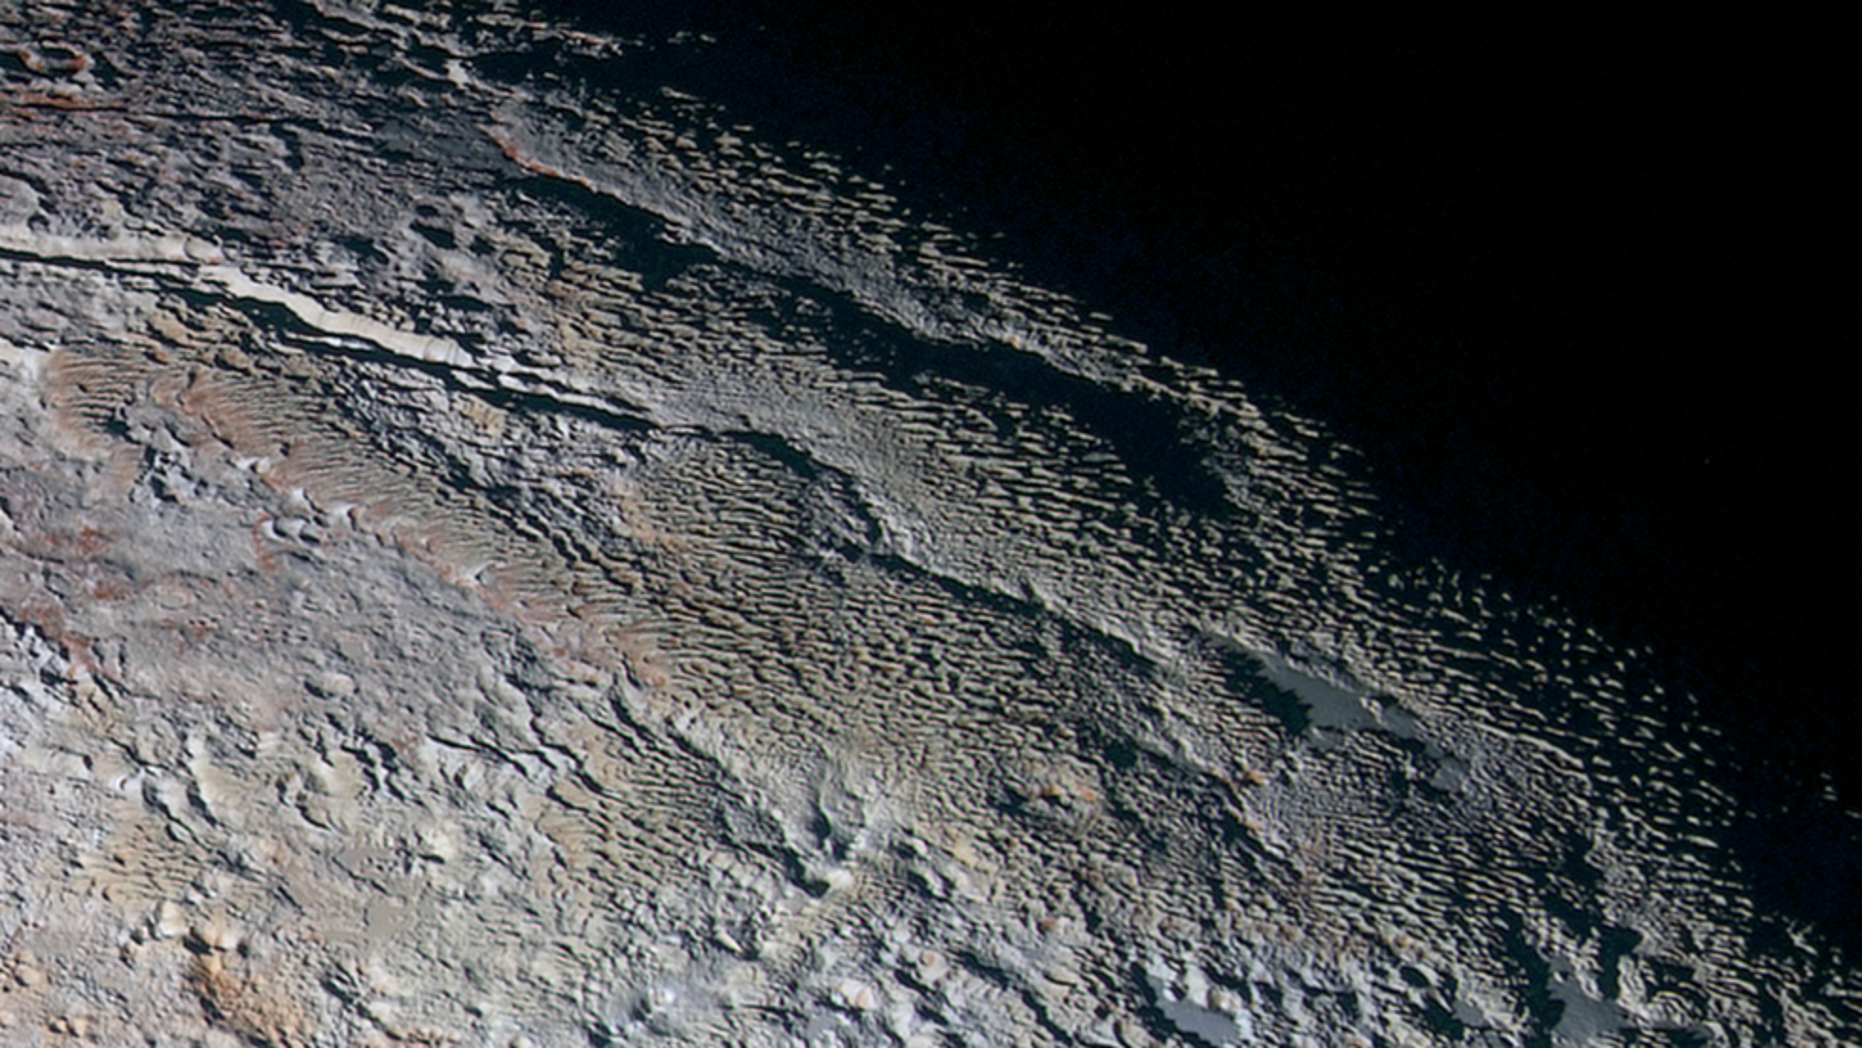 The bladed terrain of Pluto's informally named Tartarus Dorsa region, imaged by NASA's New Horizons spacecraft in July 2015. (Credits: NASA/JHUAPL/SwRI)